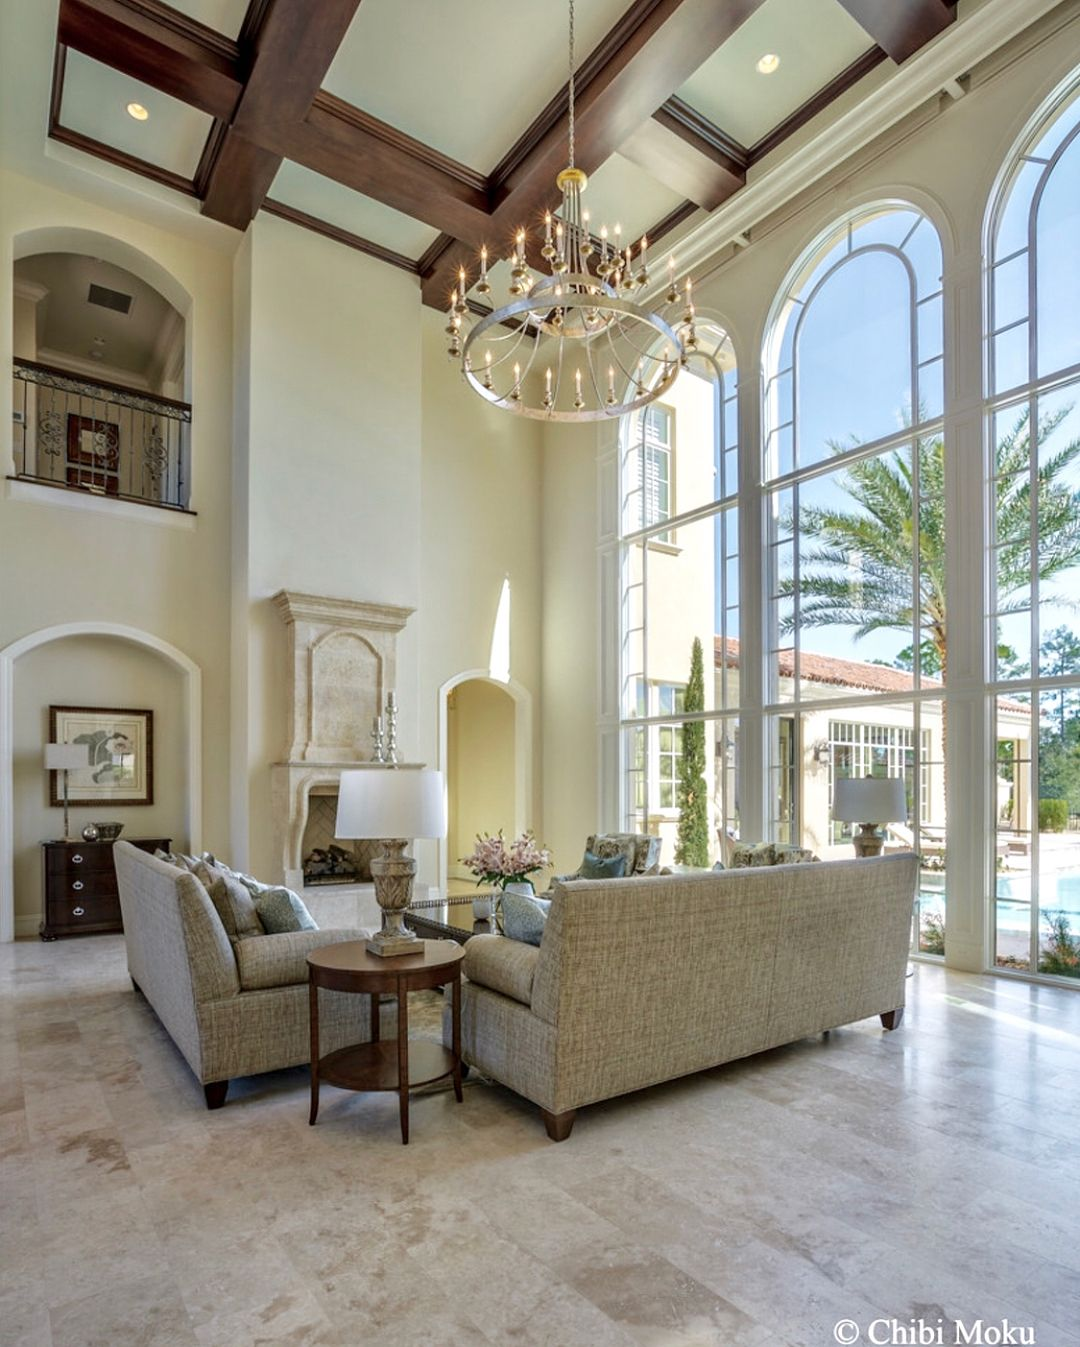 Top 11 Home Decor Vendors in 11 (With images)  Best interior